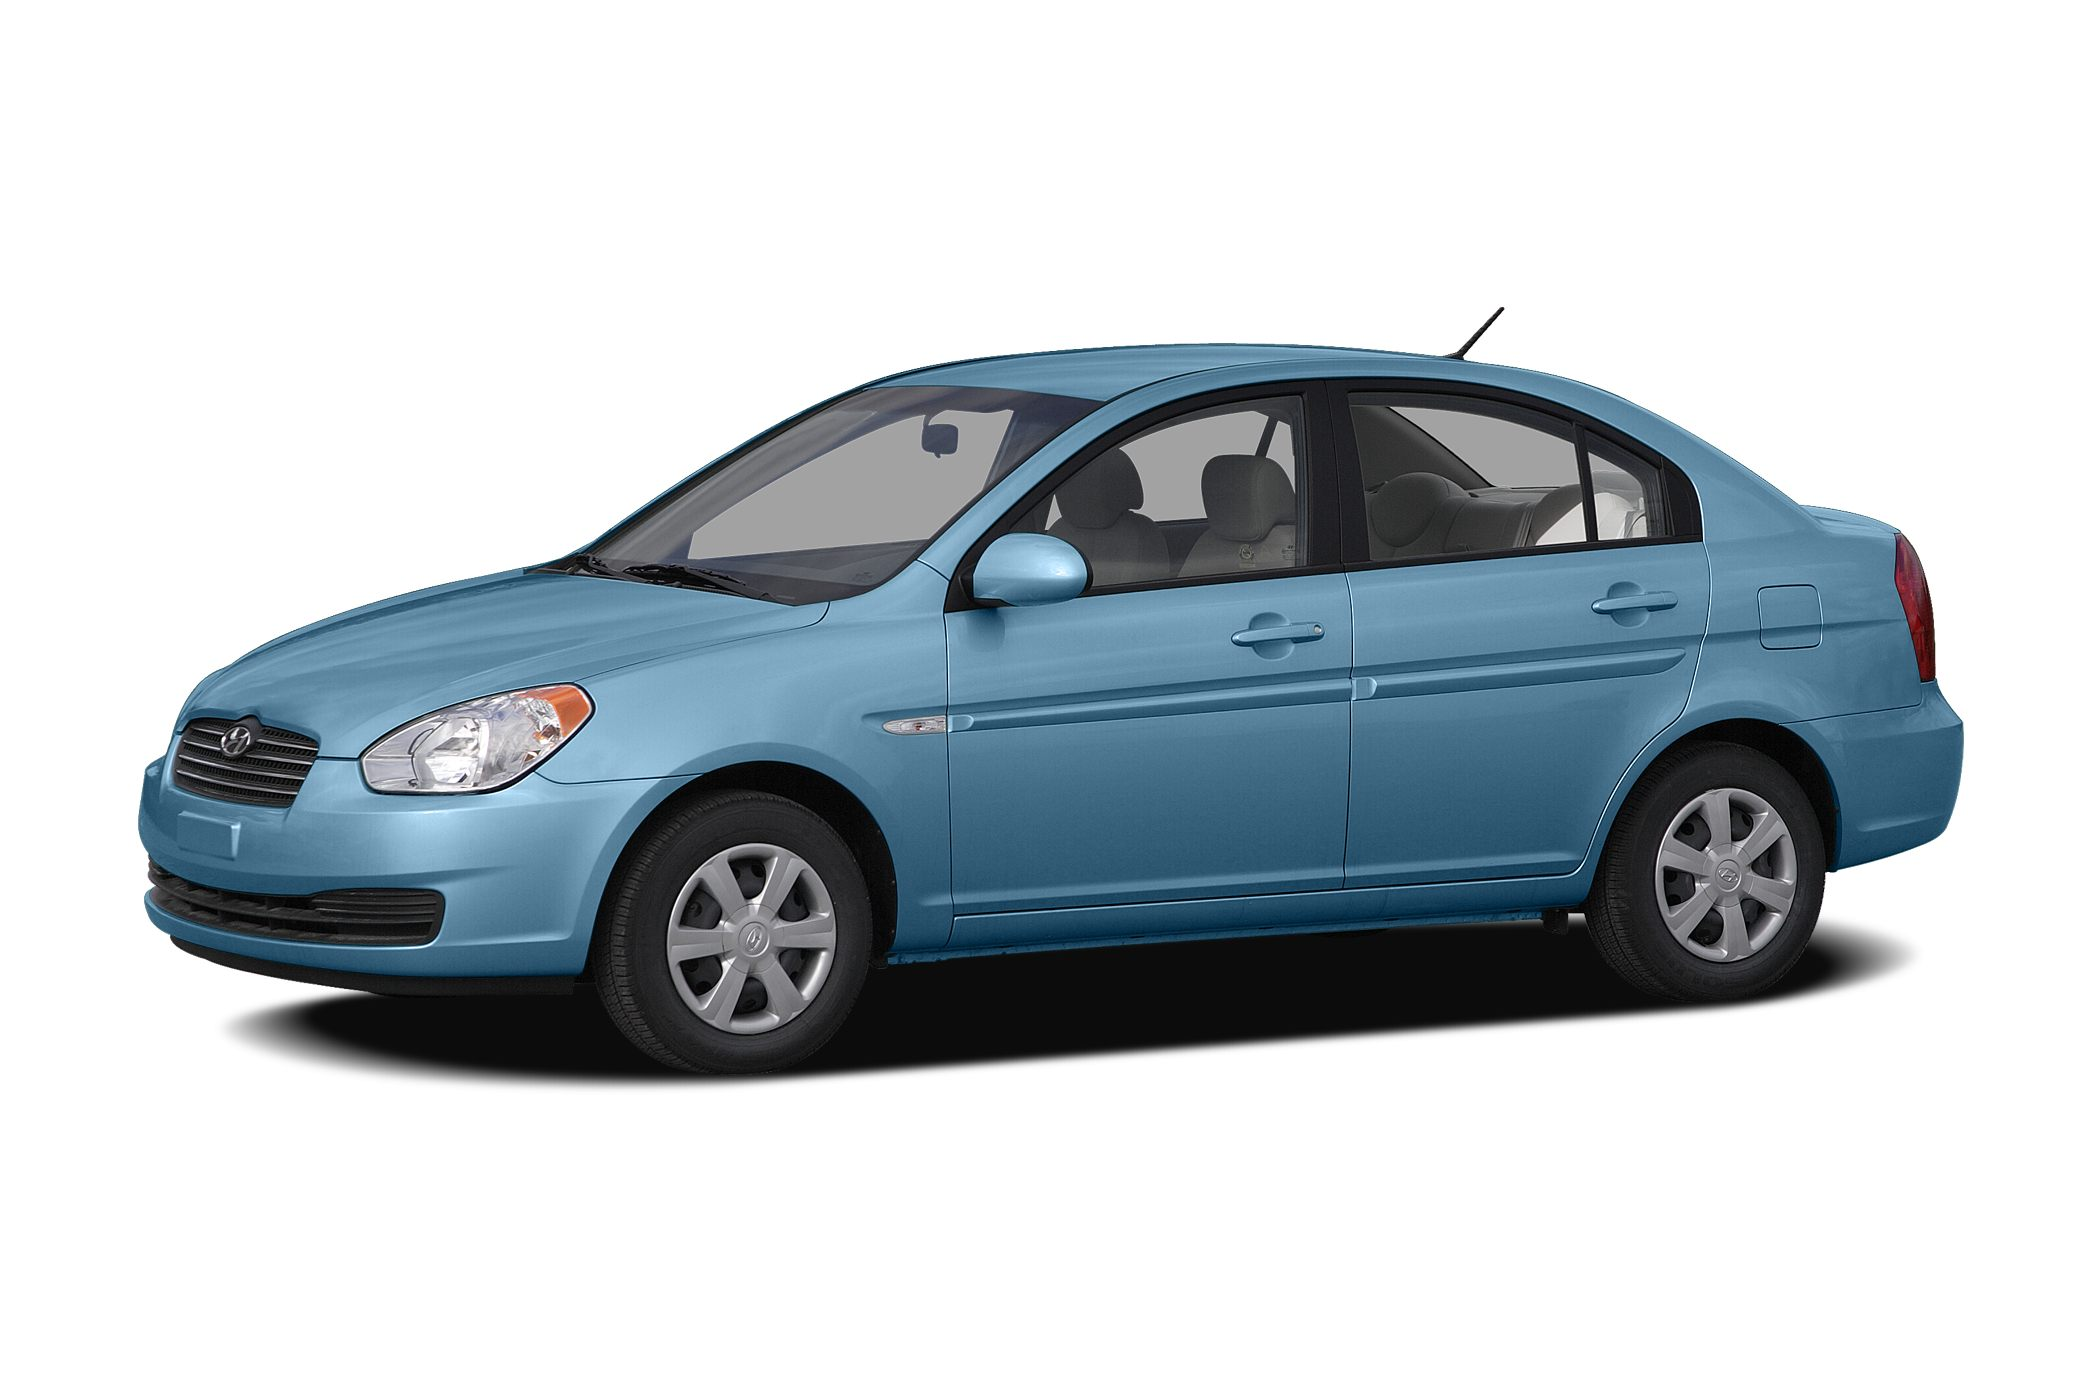 2006 Hyundai Accent GLS Sedan for sale in Fredericksburg for $7,954 with 33,615 miles